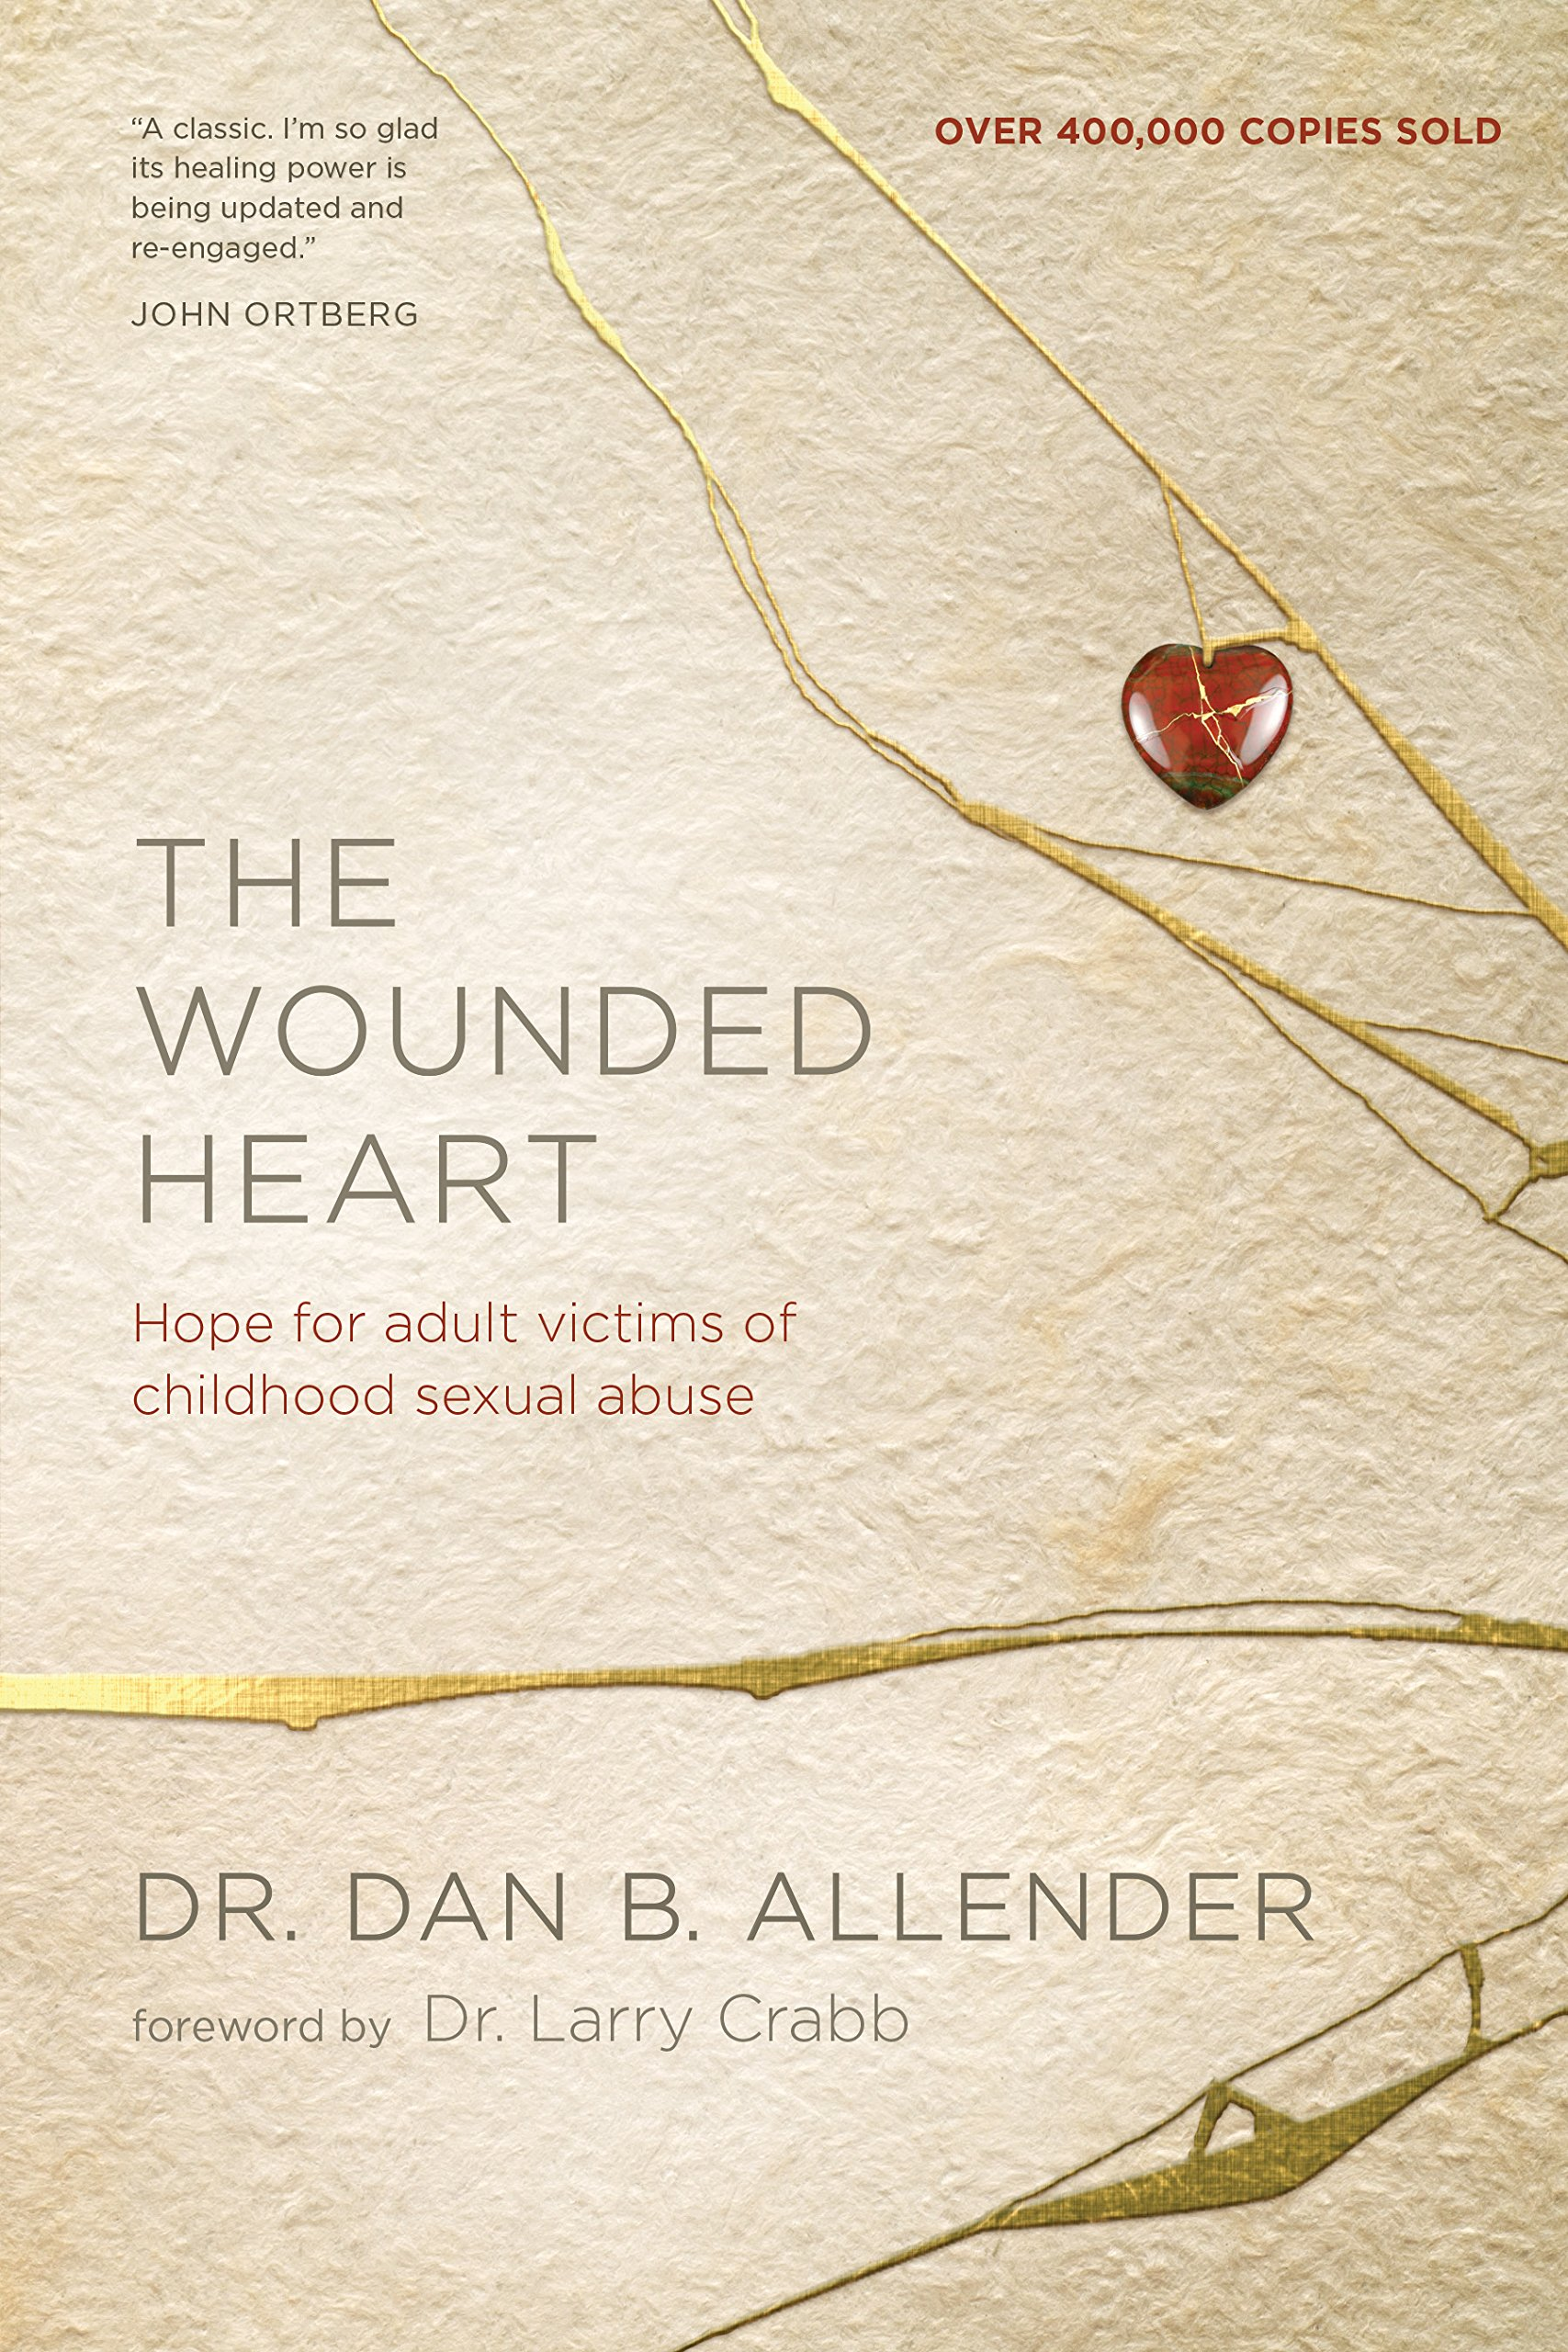 The wounded heart hope for adult victims of childhood sexual abuse the wounded heart hope for adult victims of childhood sexual abuse dan allender karen lee thorp 9781600063077 amazon books fandeluxe Choice Image